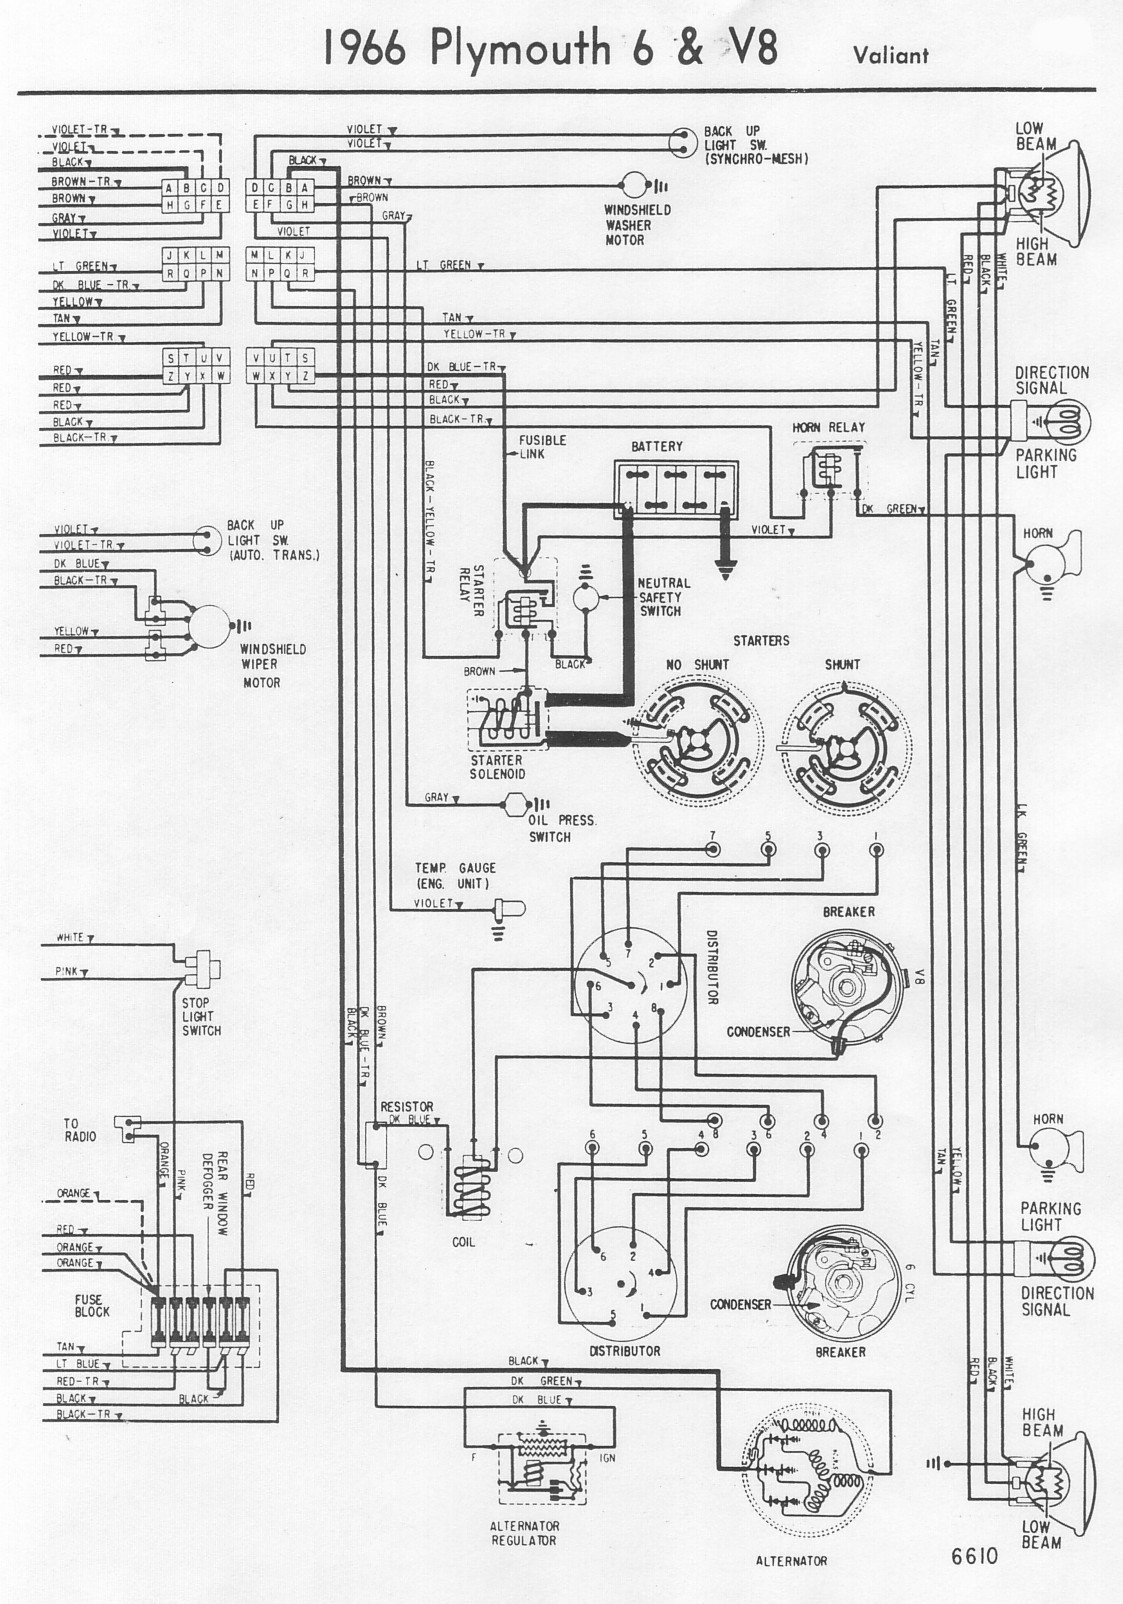 1967 Barracuda Dash Wiring Diagram - Wiring Diagram Data on ballast resistor wiring diagram, 1956 oldsmobile wiring diagram, 1967 dodge wiring diagram, 1957 dodge wiring diagram, dodge voltage regulator wiring diagram, 1965 lincoln wiring diagram, 1960 pontiac wiring diagram, 1969 cadillac wiring diagram, 1955 dodge wiring diagram, 1965 dodge wiring diagram, dodge truck wiring diagram, 1953 dodge wiring diagram, 1970 dodge alternator wiring, 1955 plymouth wiring diagram, 1954 dodge wiring diagram, 1961 cadillac wiring diagram, 1974 dodge wiring diagram, electrical circuit wiring diagram, 1958 dodge wiring diagram, 1957 plymouth wiring diagram,